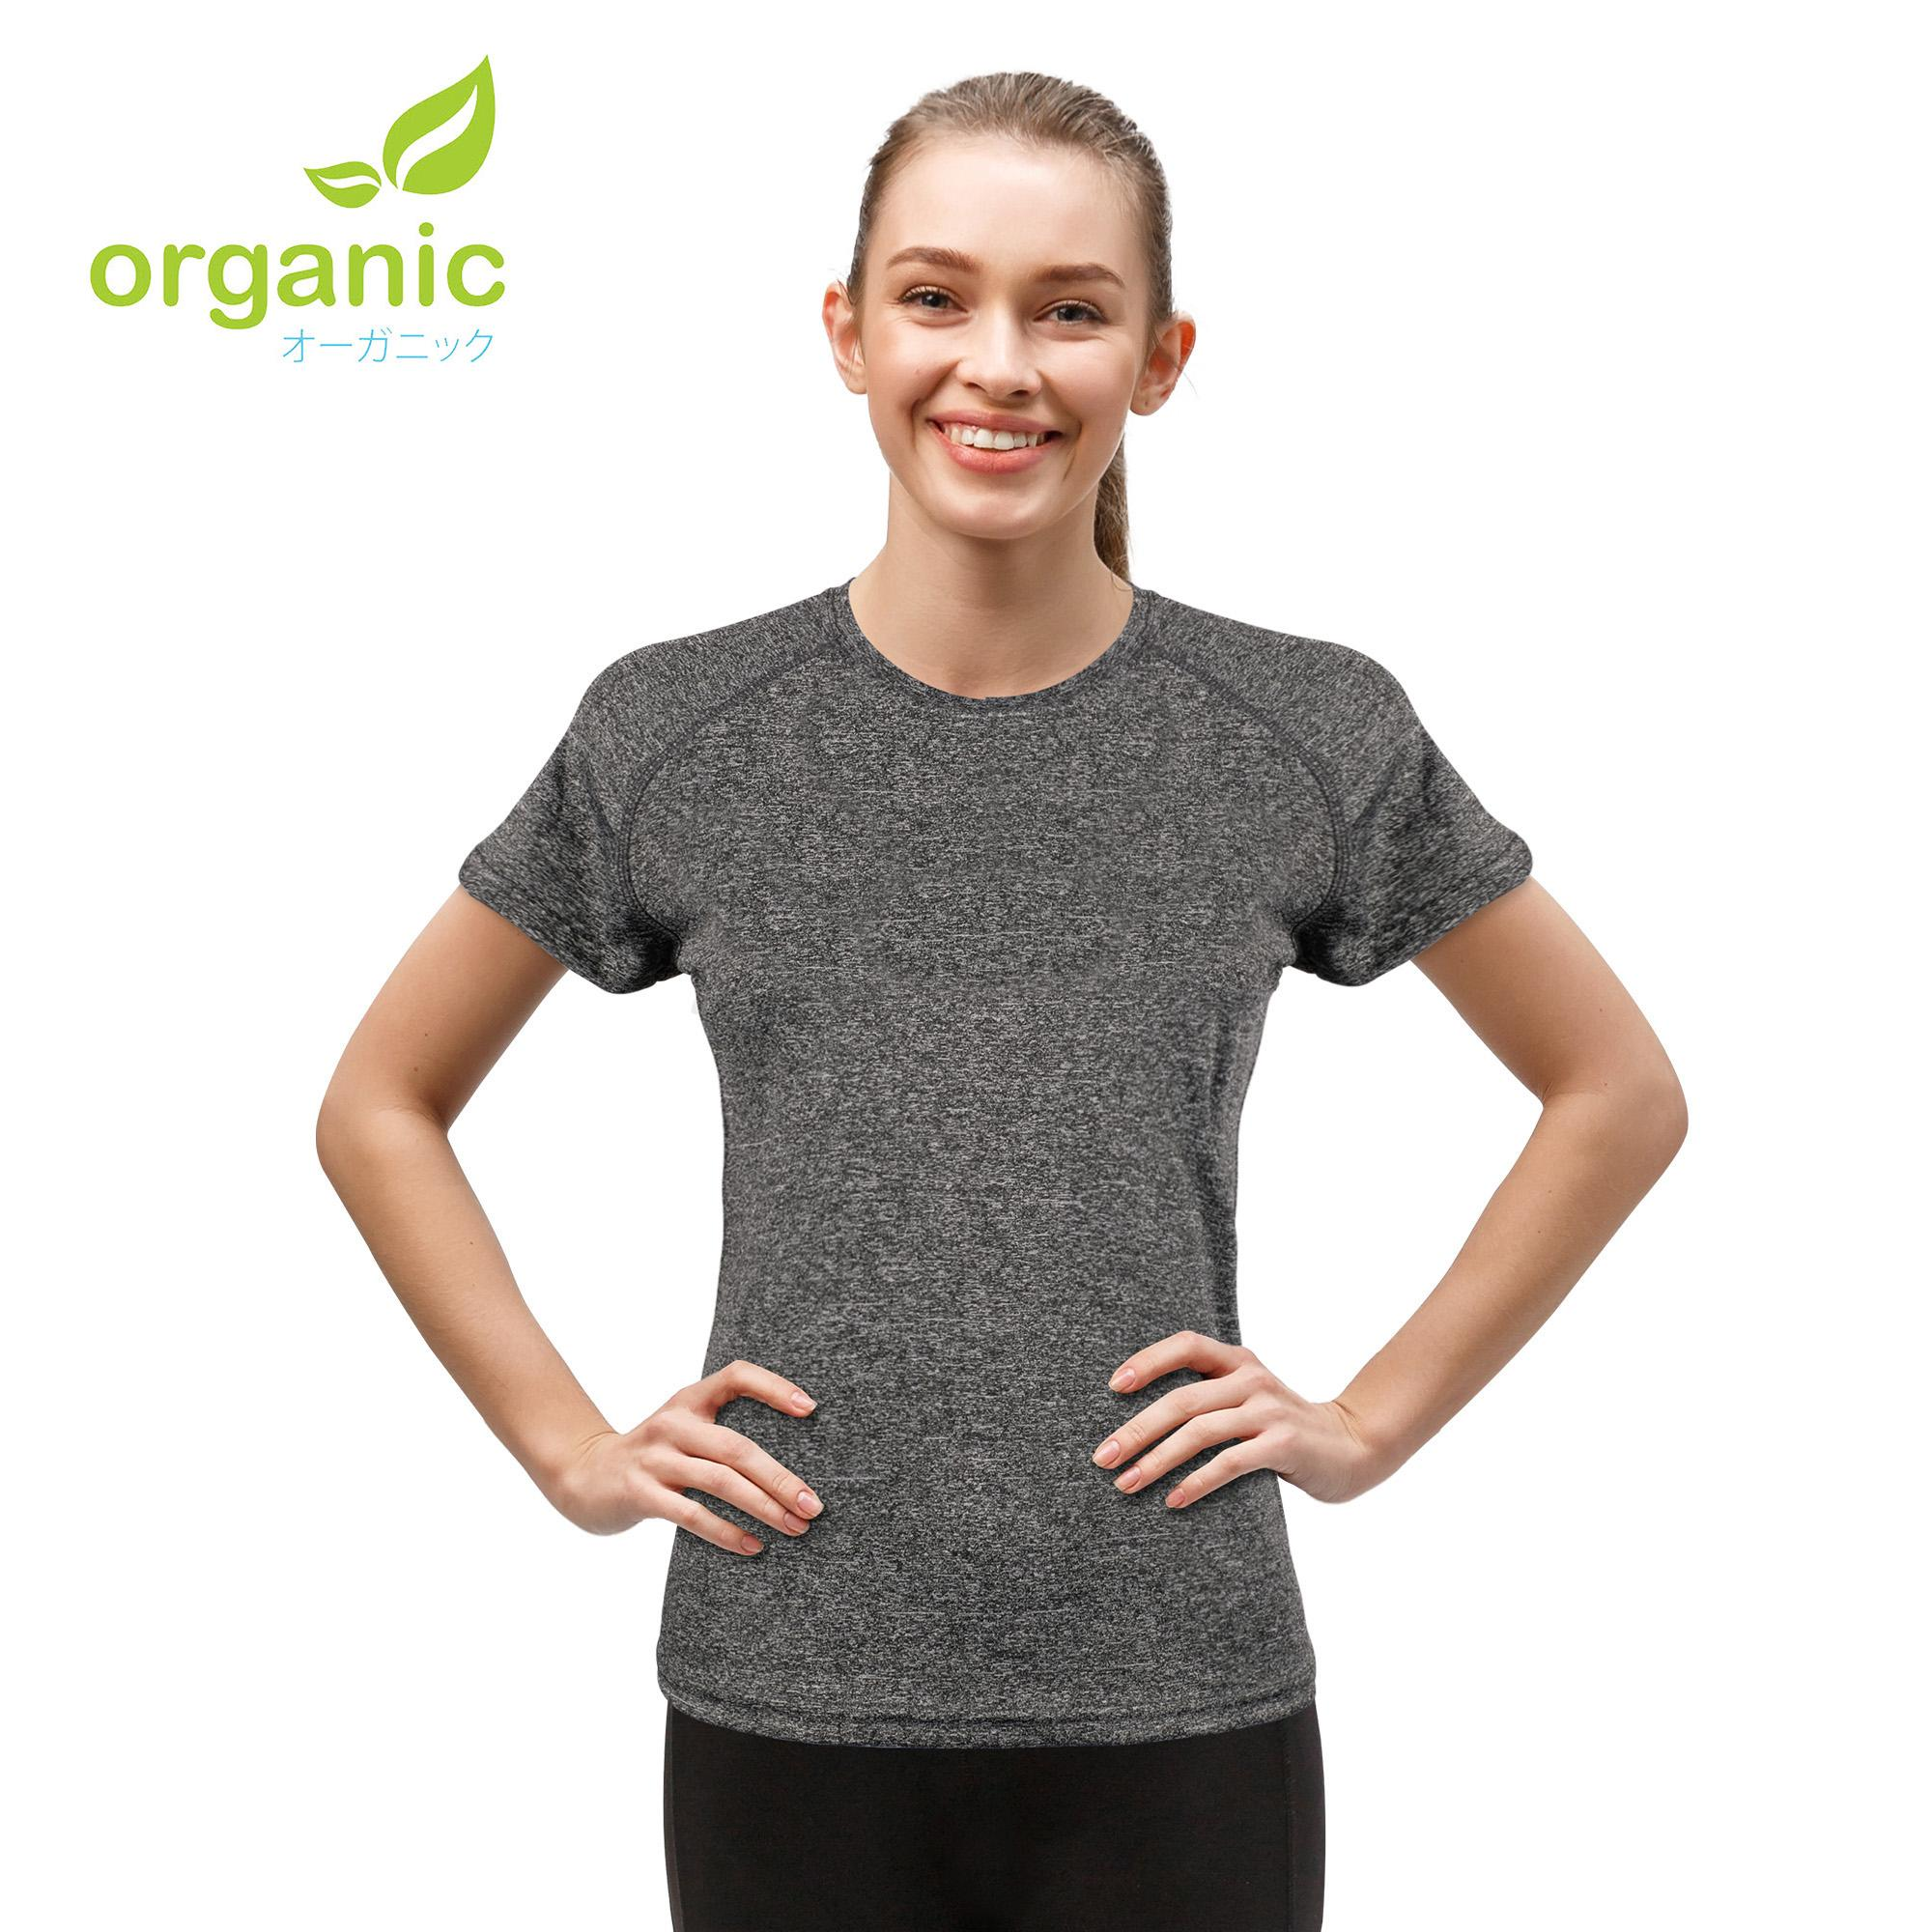 4d378e18 Organic Ladies Cool Gear Active Sports Wear Shirt Gym Training Dry Dri Fit  Fitness Gym Shirt Athletic Dry Fit Shirt For Running Jogging Yoga Workout  ...